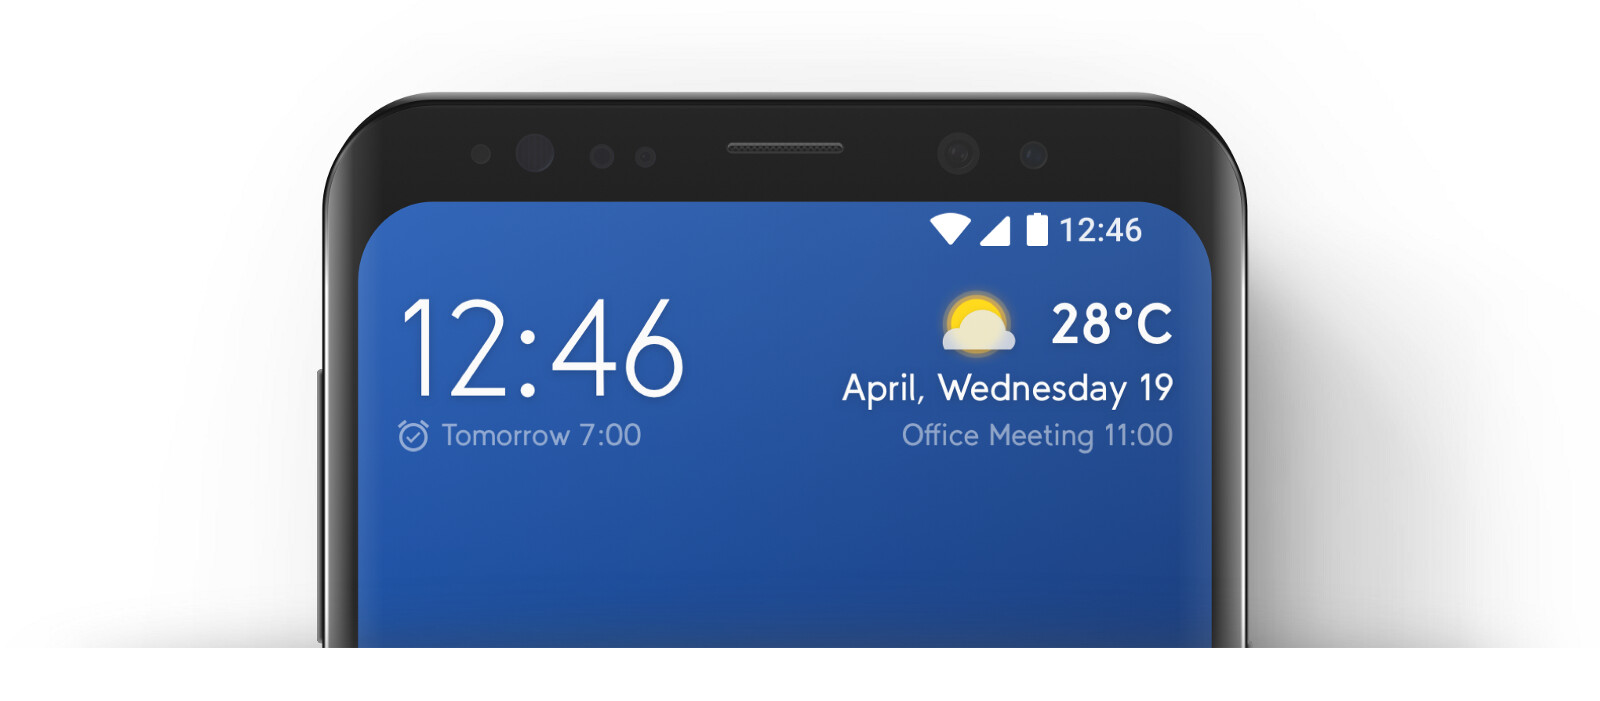 Smart Launcher gets completely overhauled with loads of new